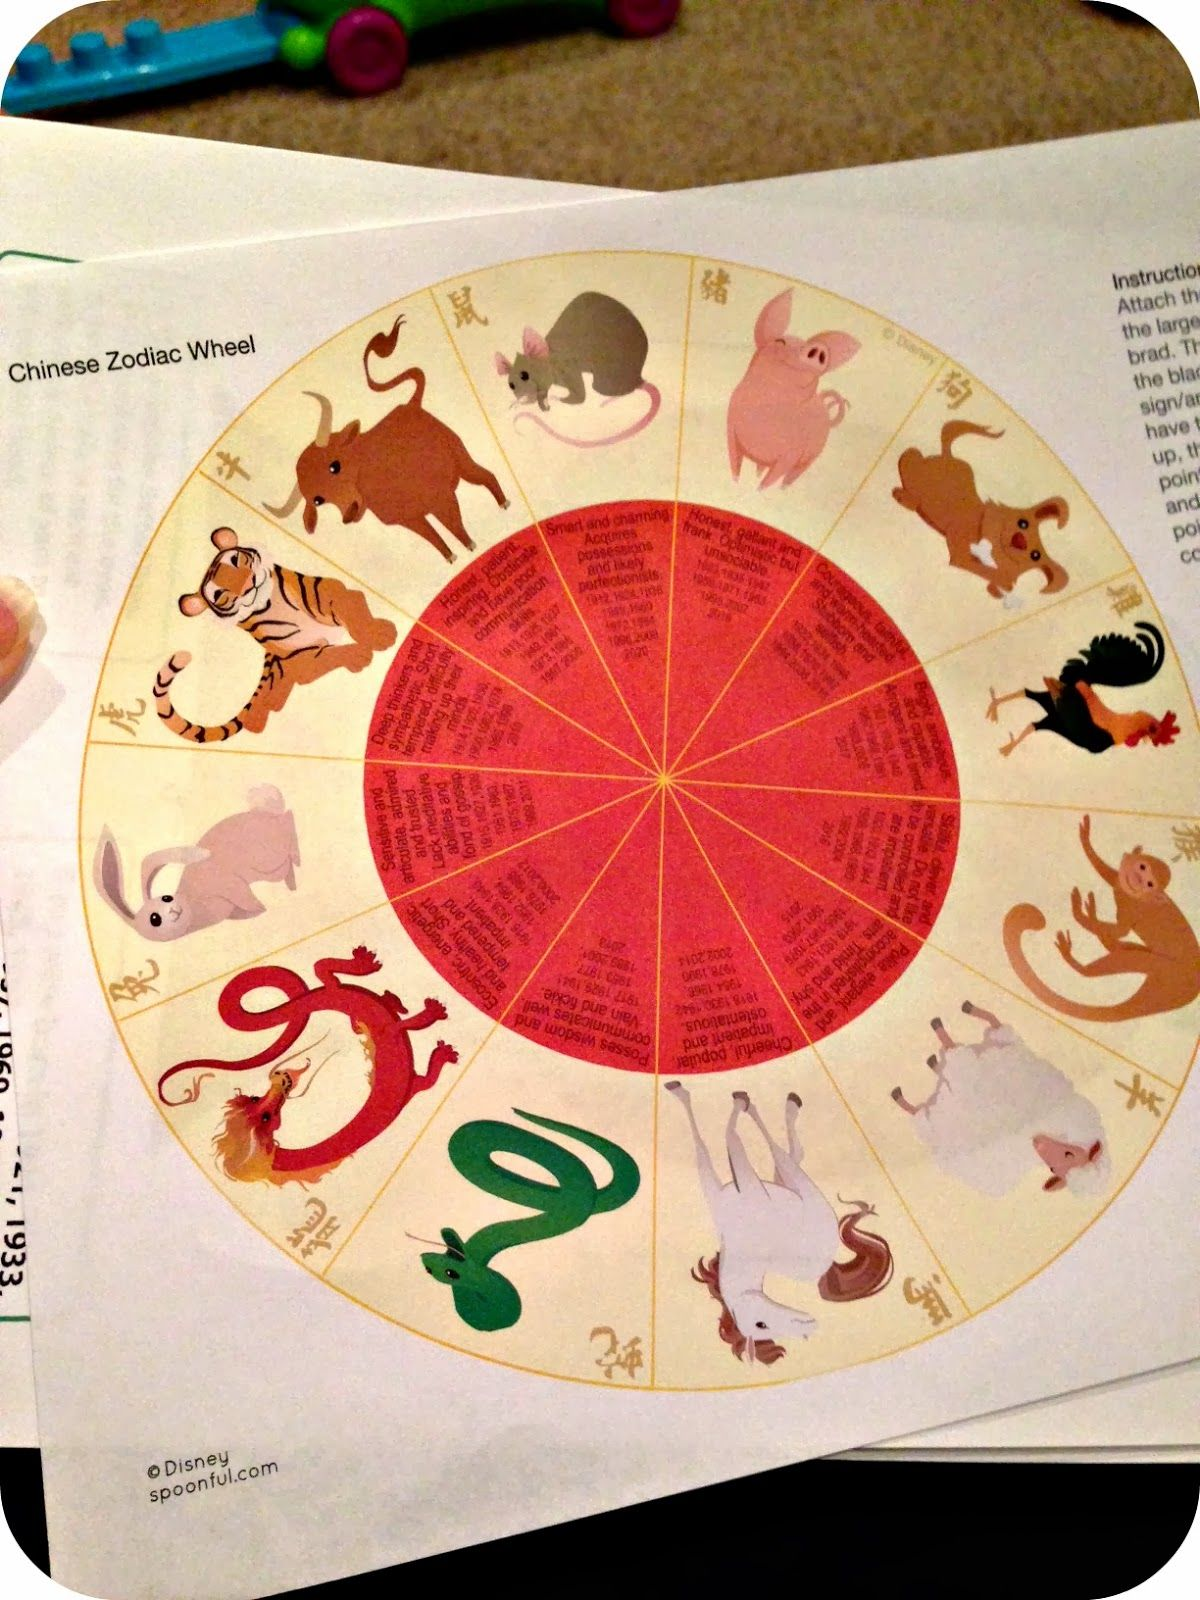 20489de90 Chinese horoscope - kids have fun learning about their sign and the animal  that represents the year they were born - good information for Chinese New  Year